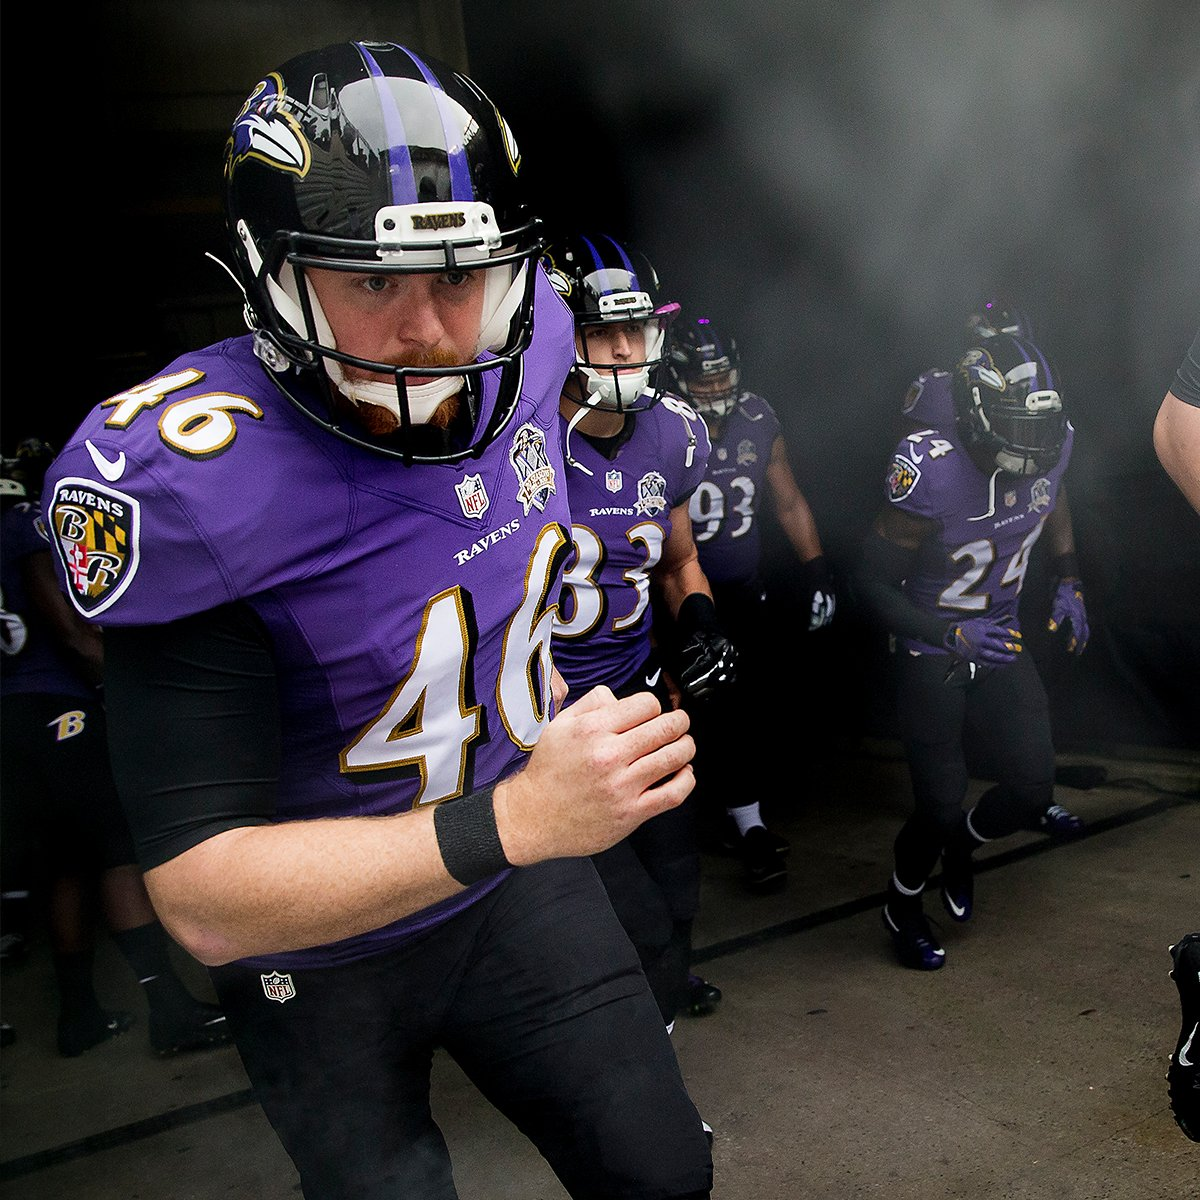 Baltimore Ravens On Twitter Congratulations Morgancox46 Being Named To The AFCs Pro Bowl Roster Tco DcKbrdHOSa